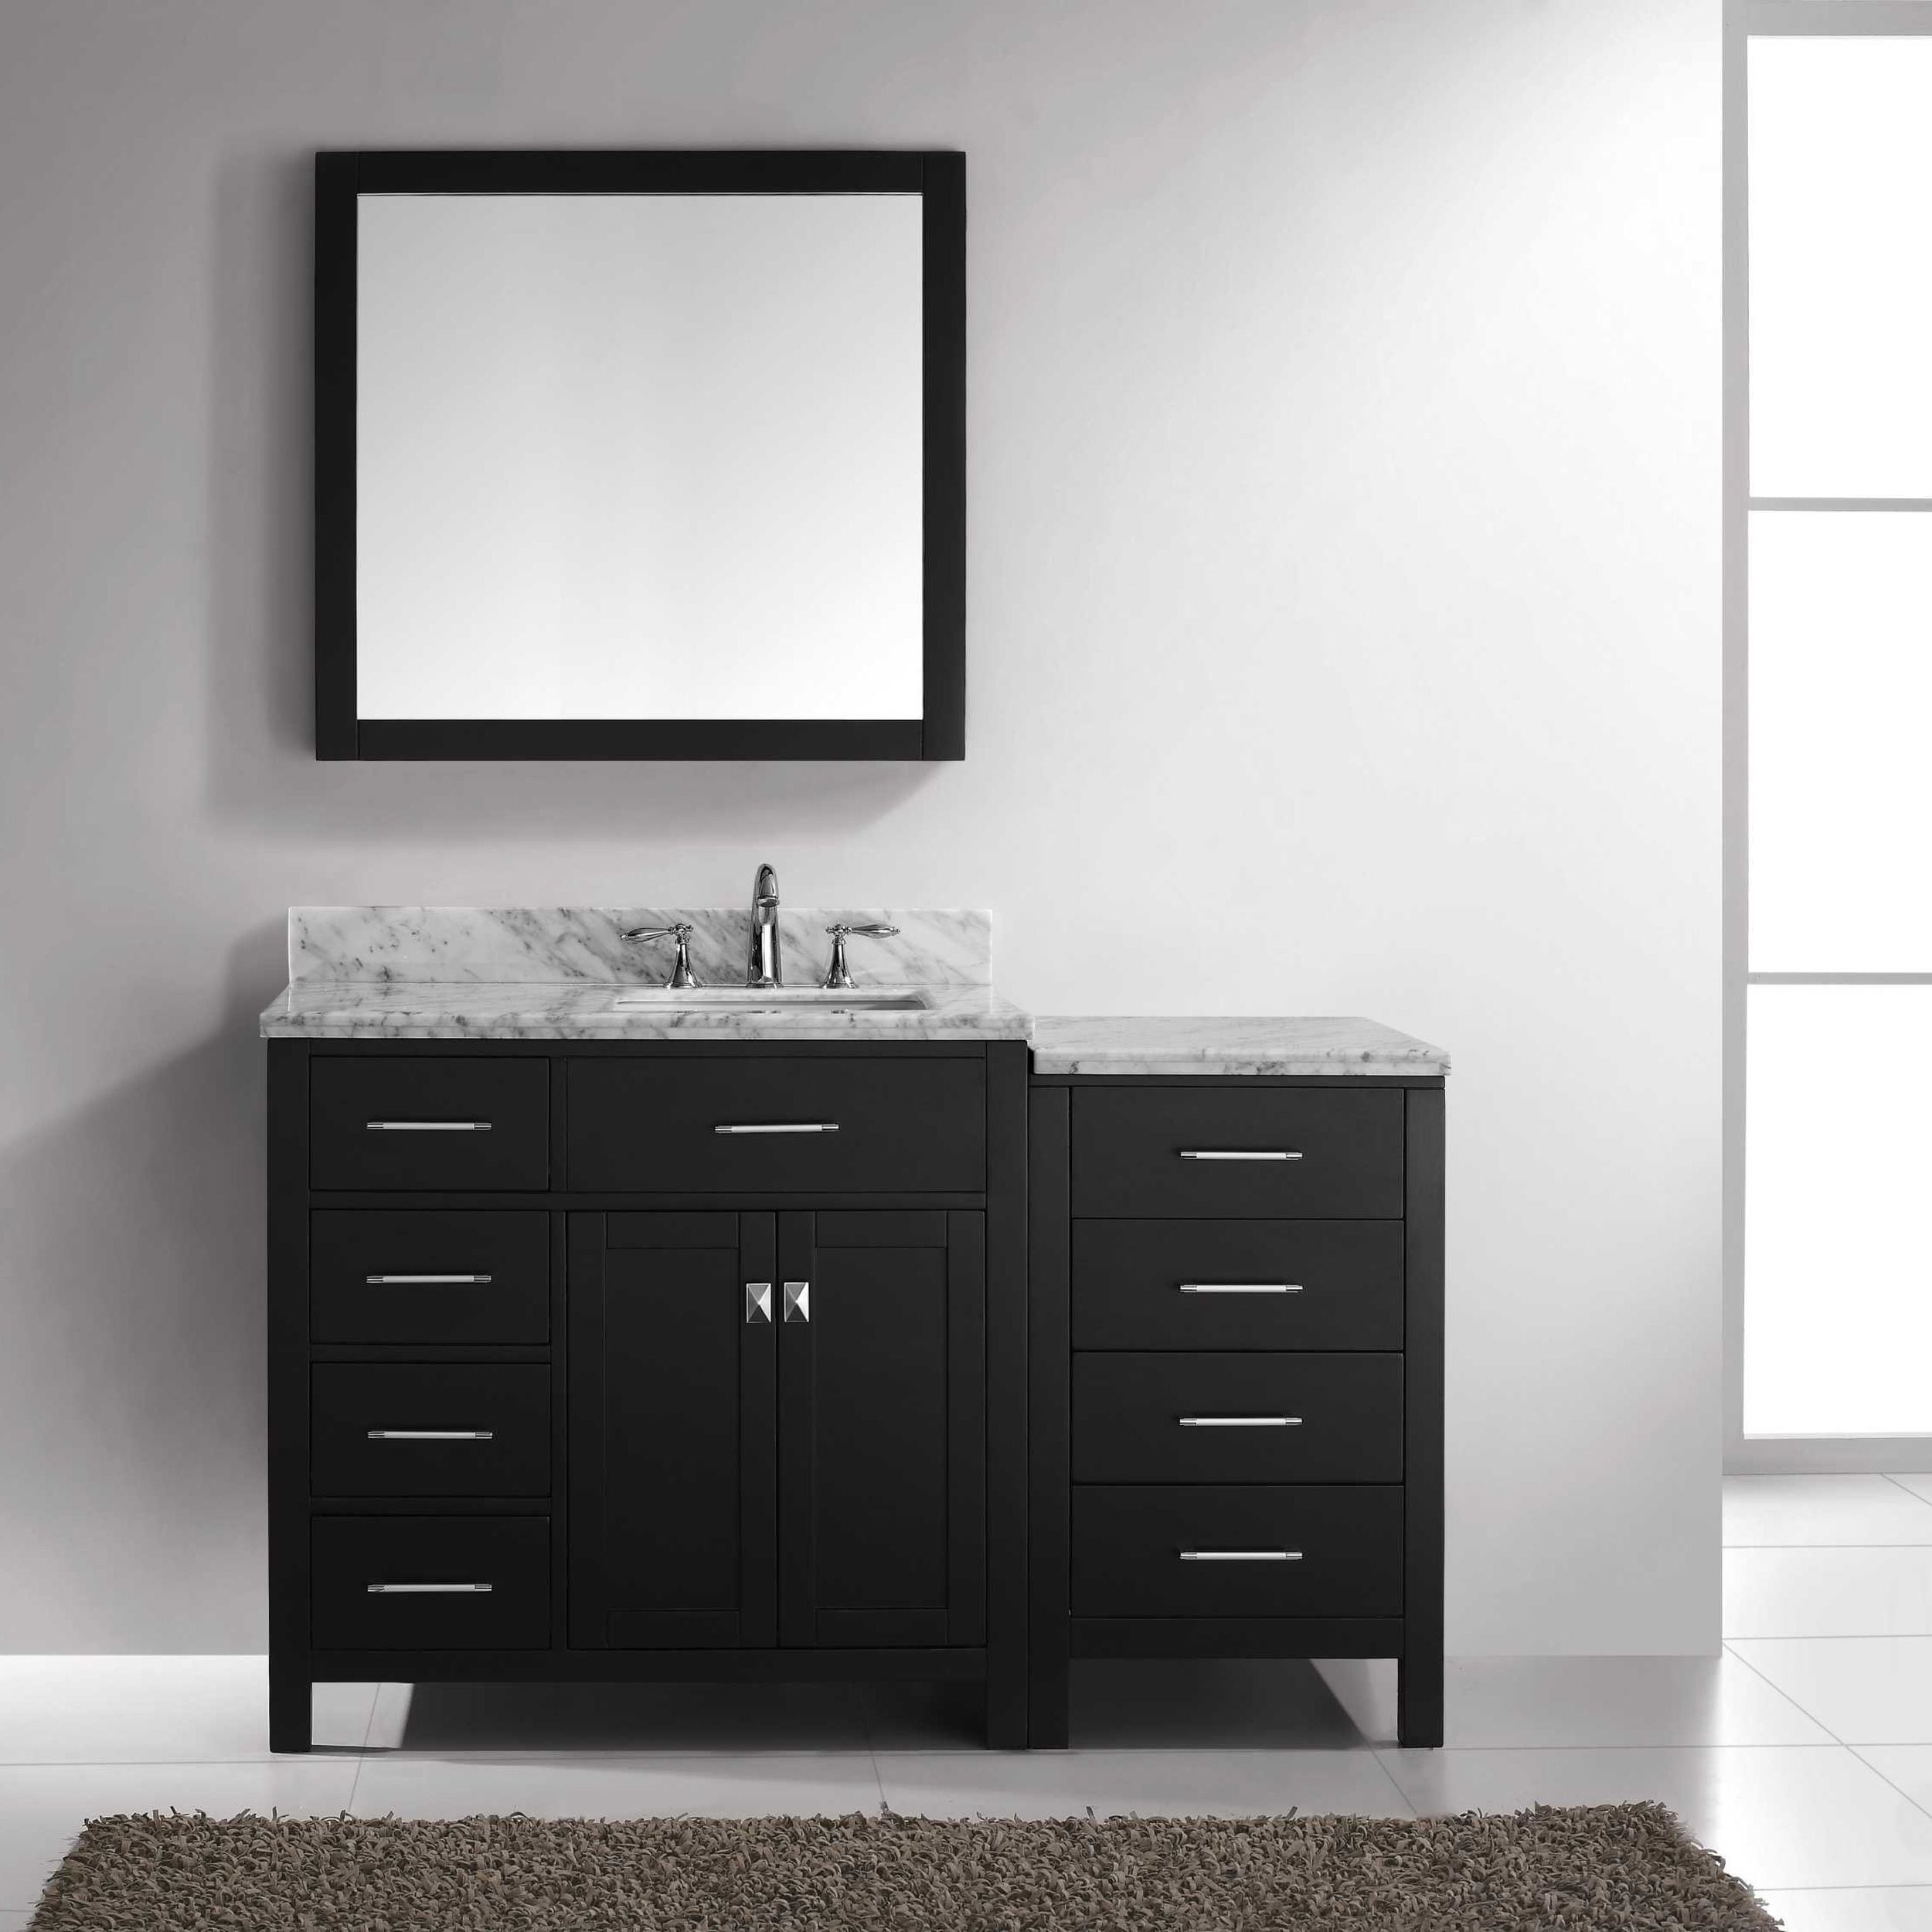 Virtu Usa Caroline Parkway 57 Inch Single Bathroom Vanity Set With Faucet And Left Mounted Drawers Overstock 11884727